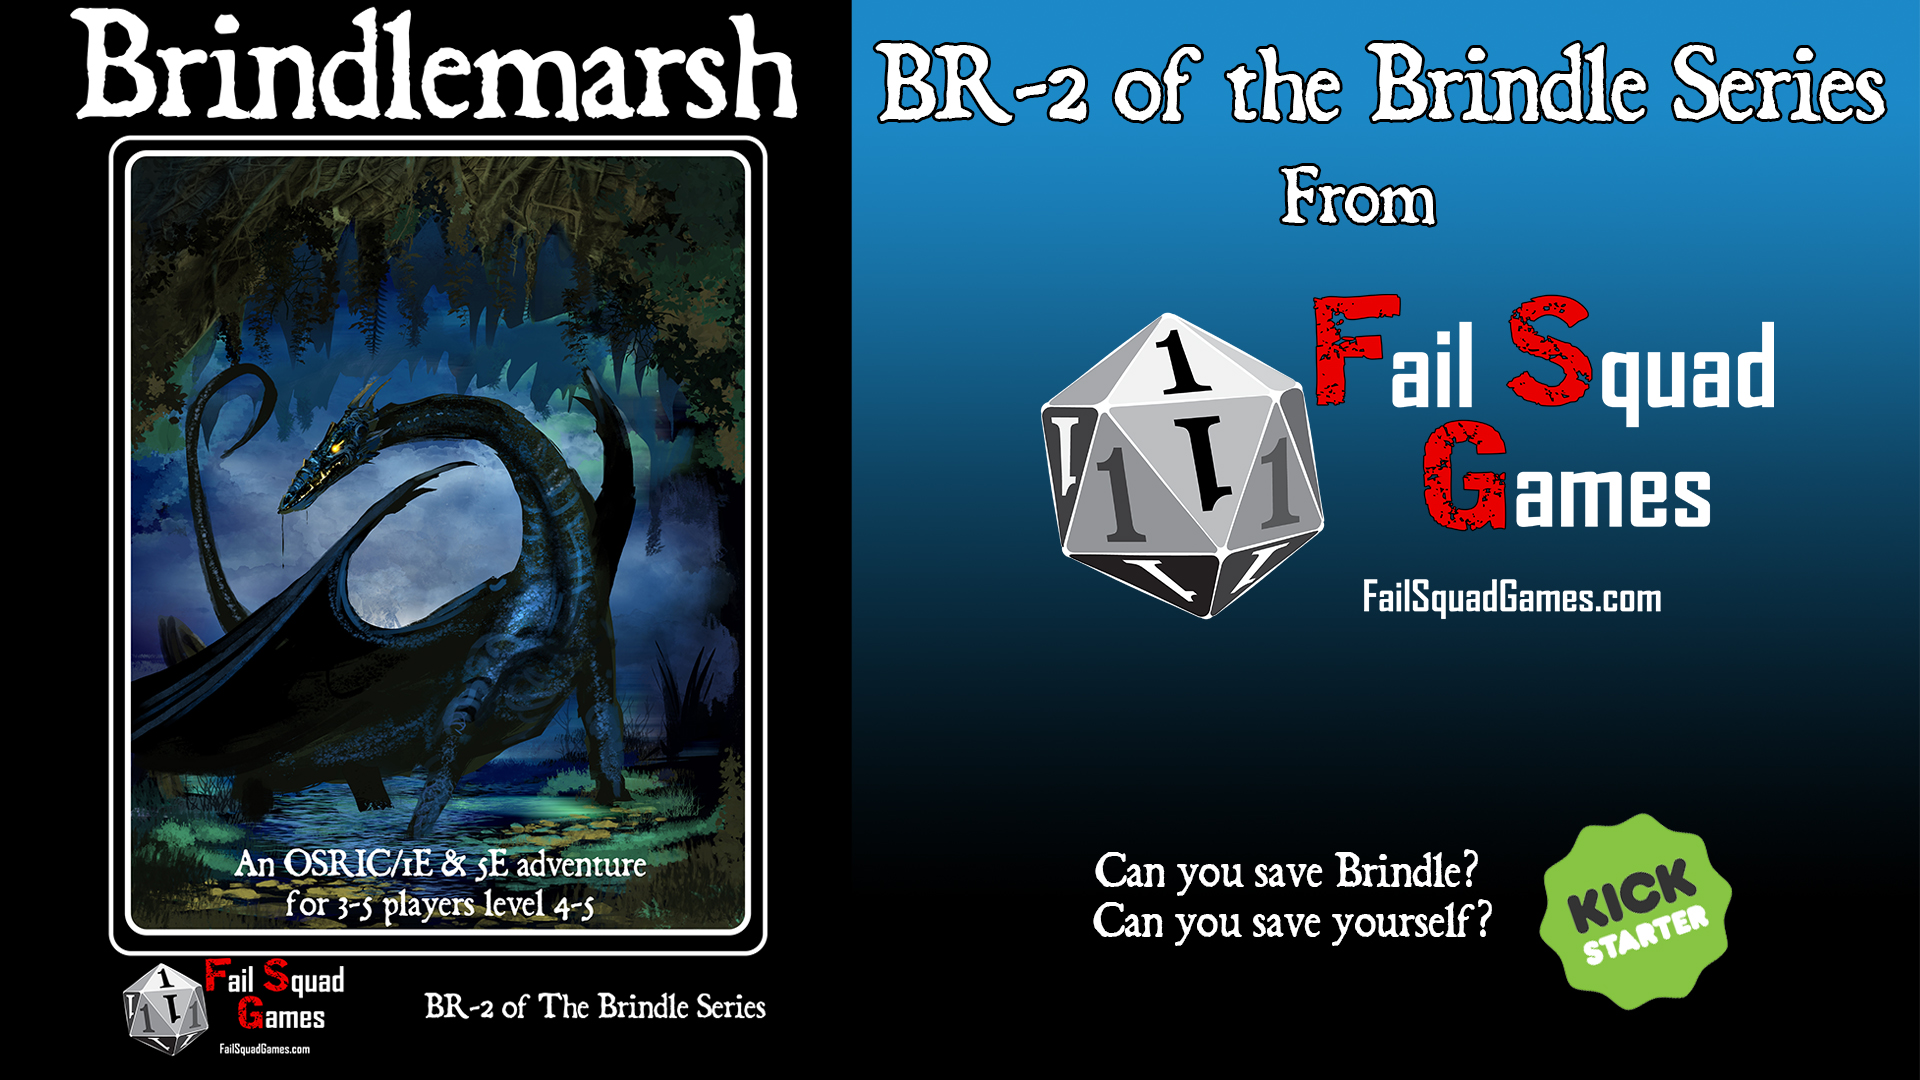 Brindlemarsh is live!